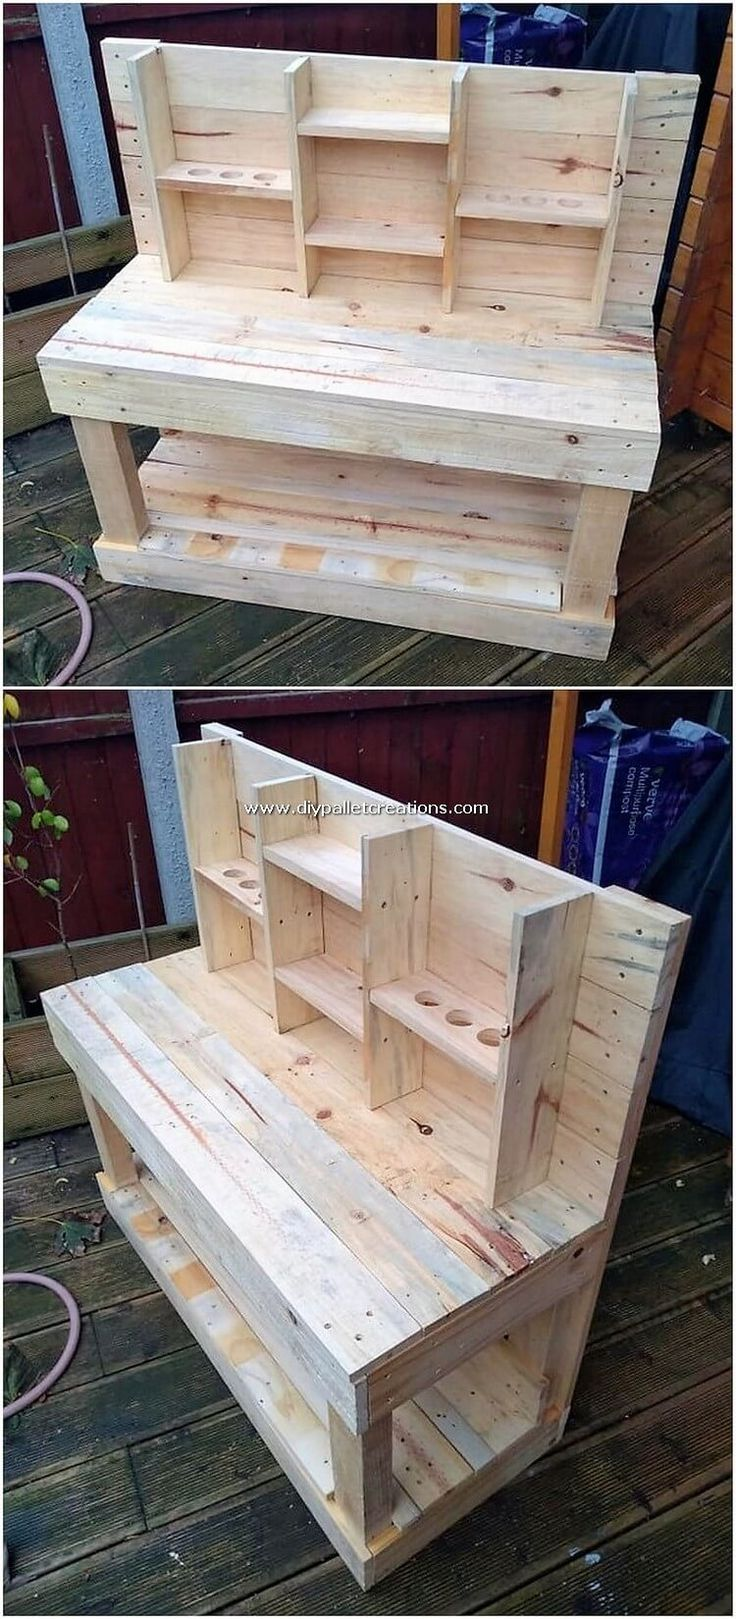 Superior Wood Shipping Pallet DIY Ideas